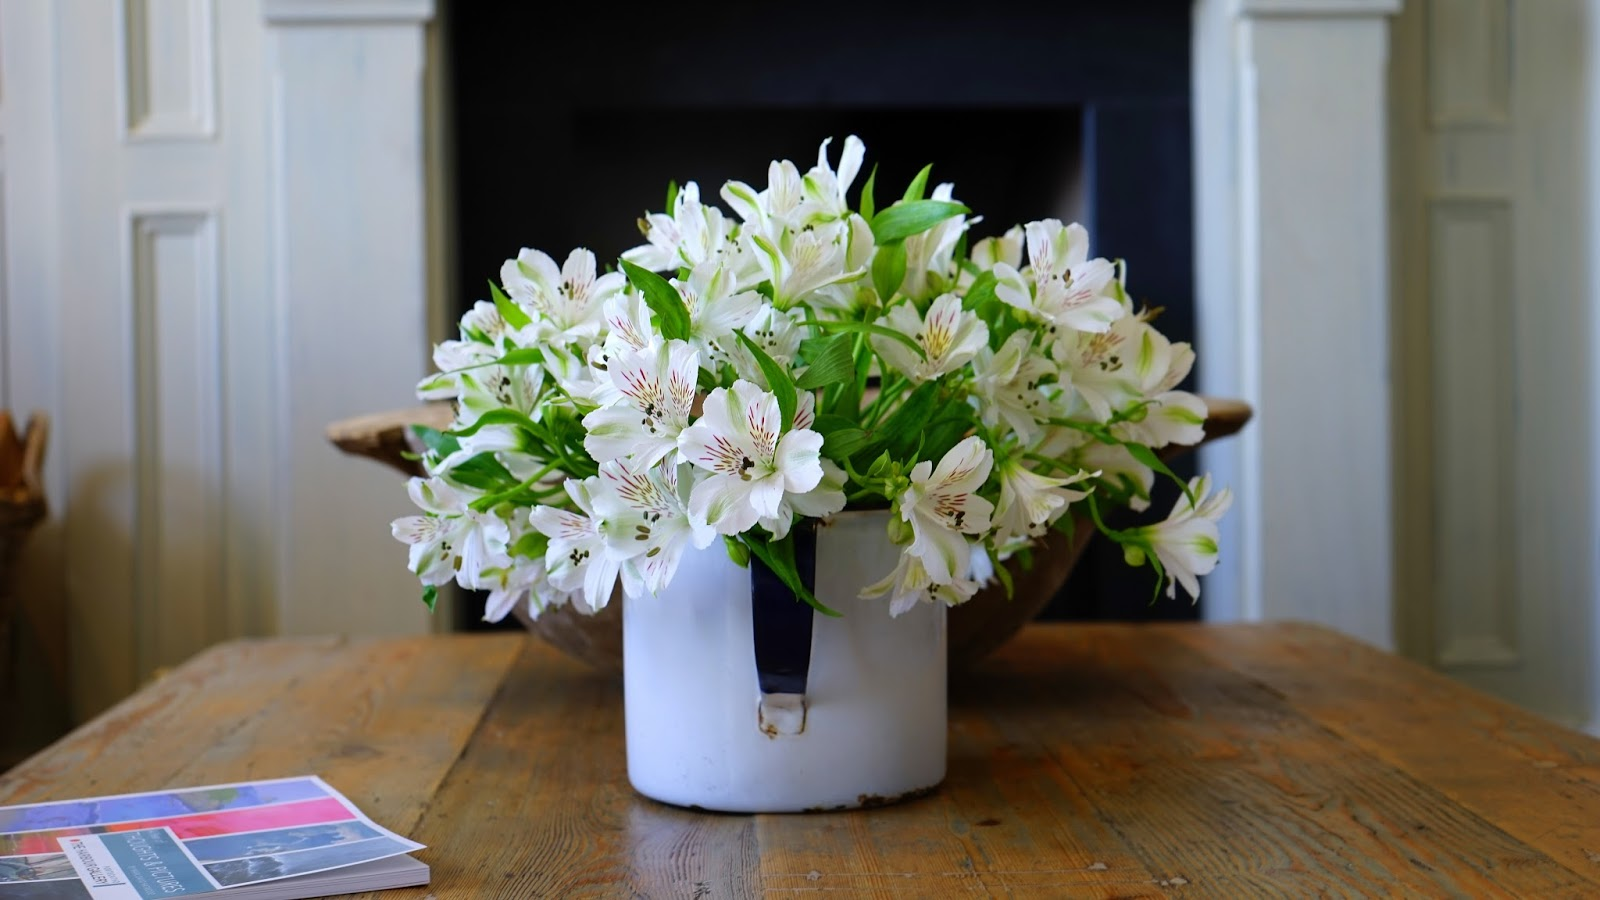 Spring flowers in a white pot on a wooden table